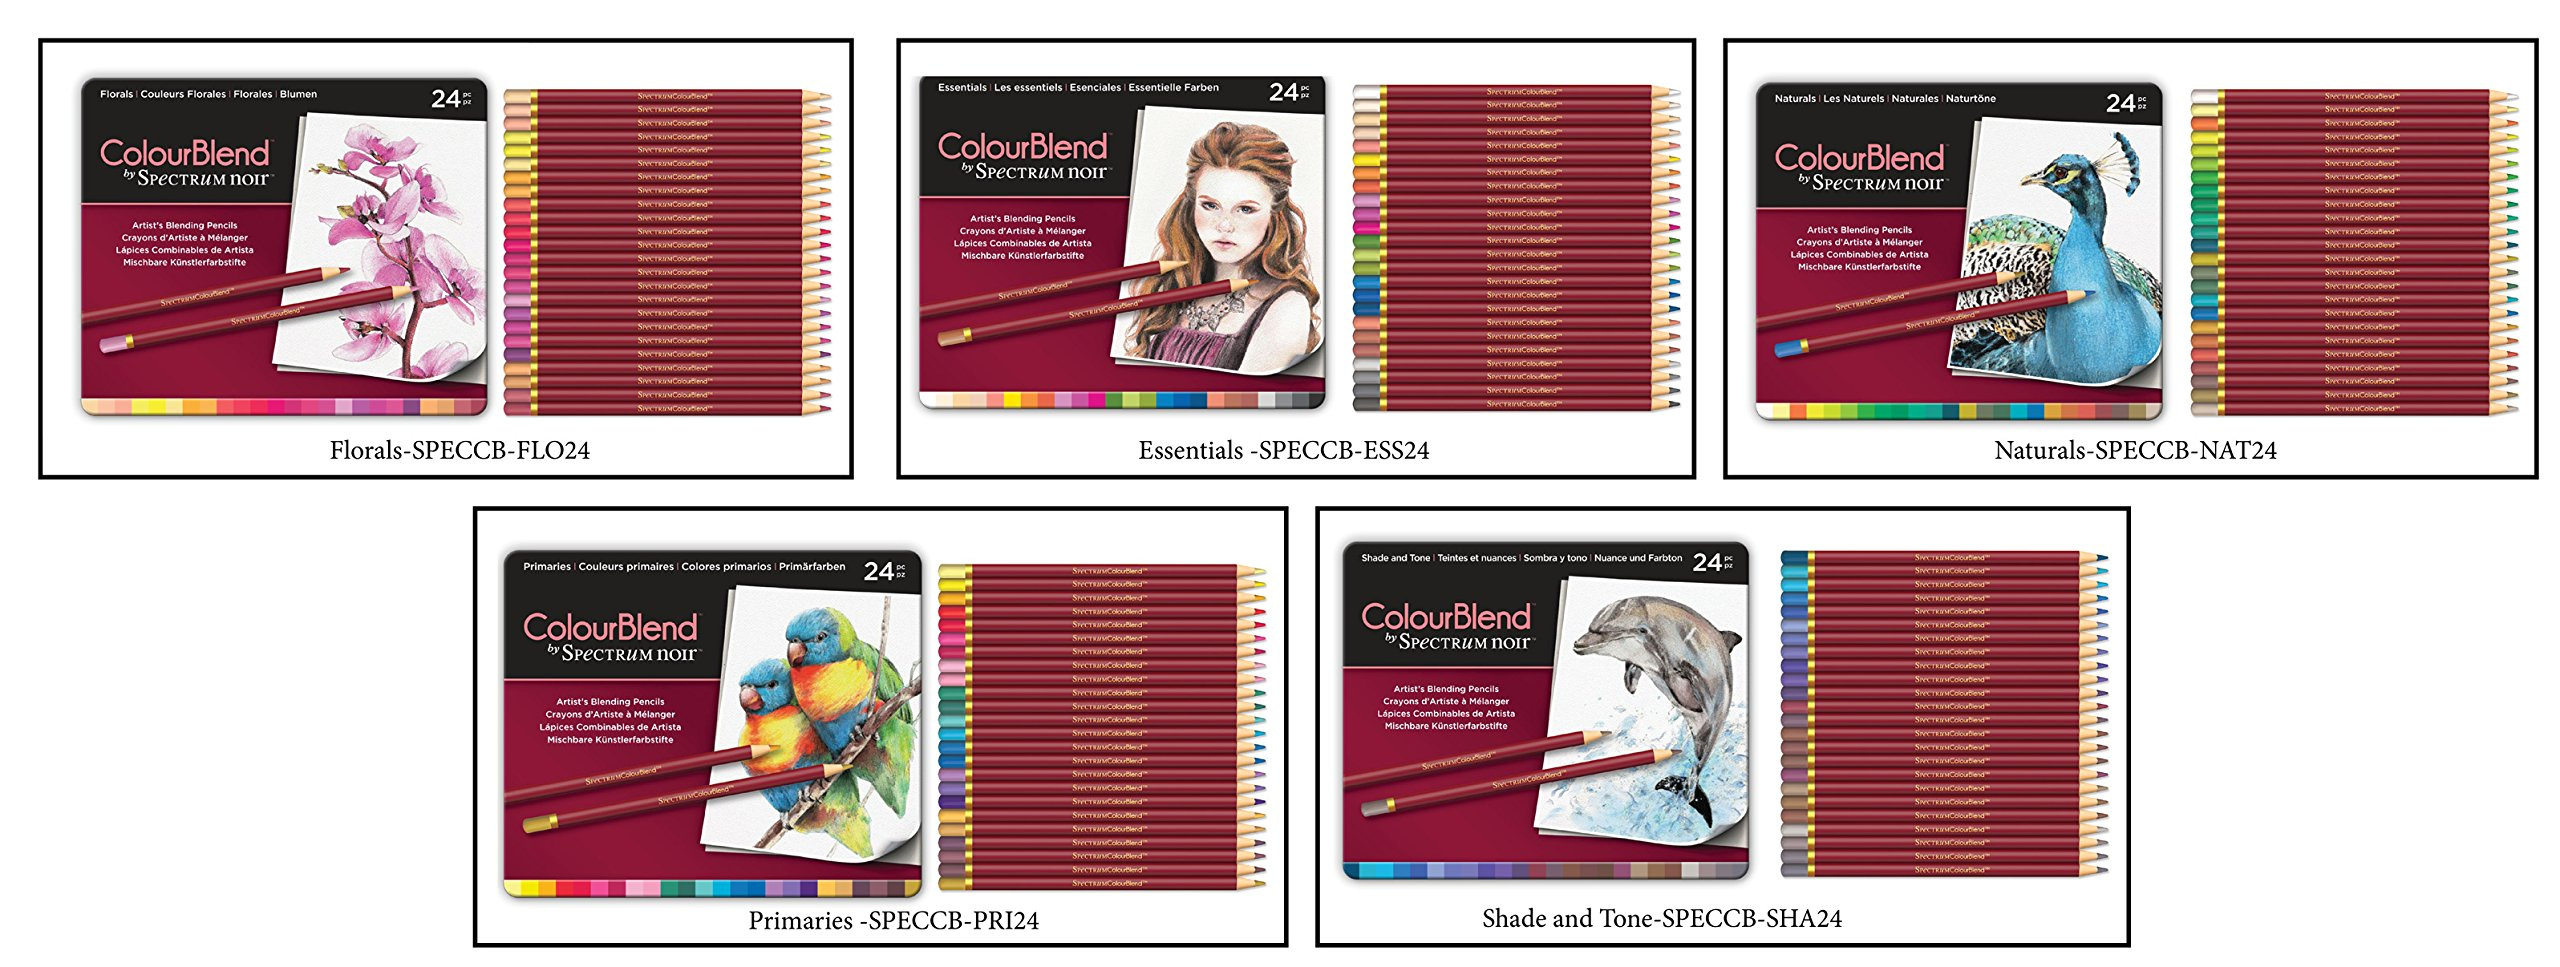 Set of 5 ColourBlend by Spectrum Noir New, 120 Artist's Pencils-Each Set 24 Piece Pencil Tin x 5- Florals, Essentials, Naturals, Primaries and Shade and Tone by Spectrum Noir